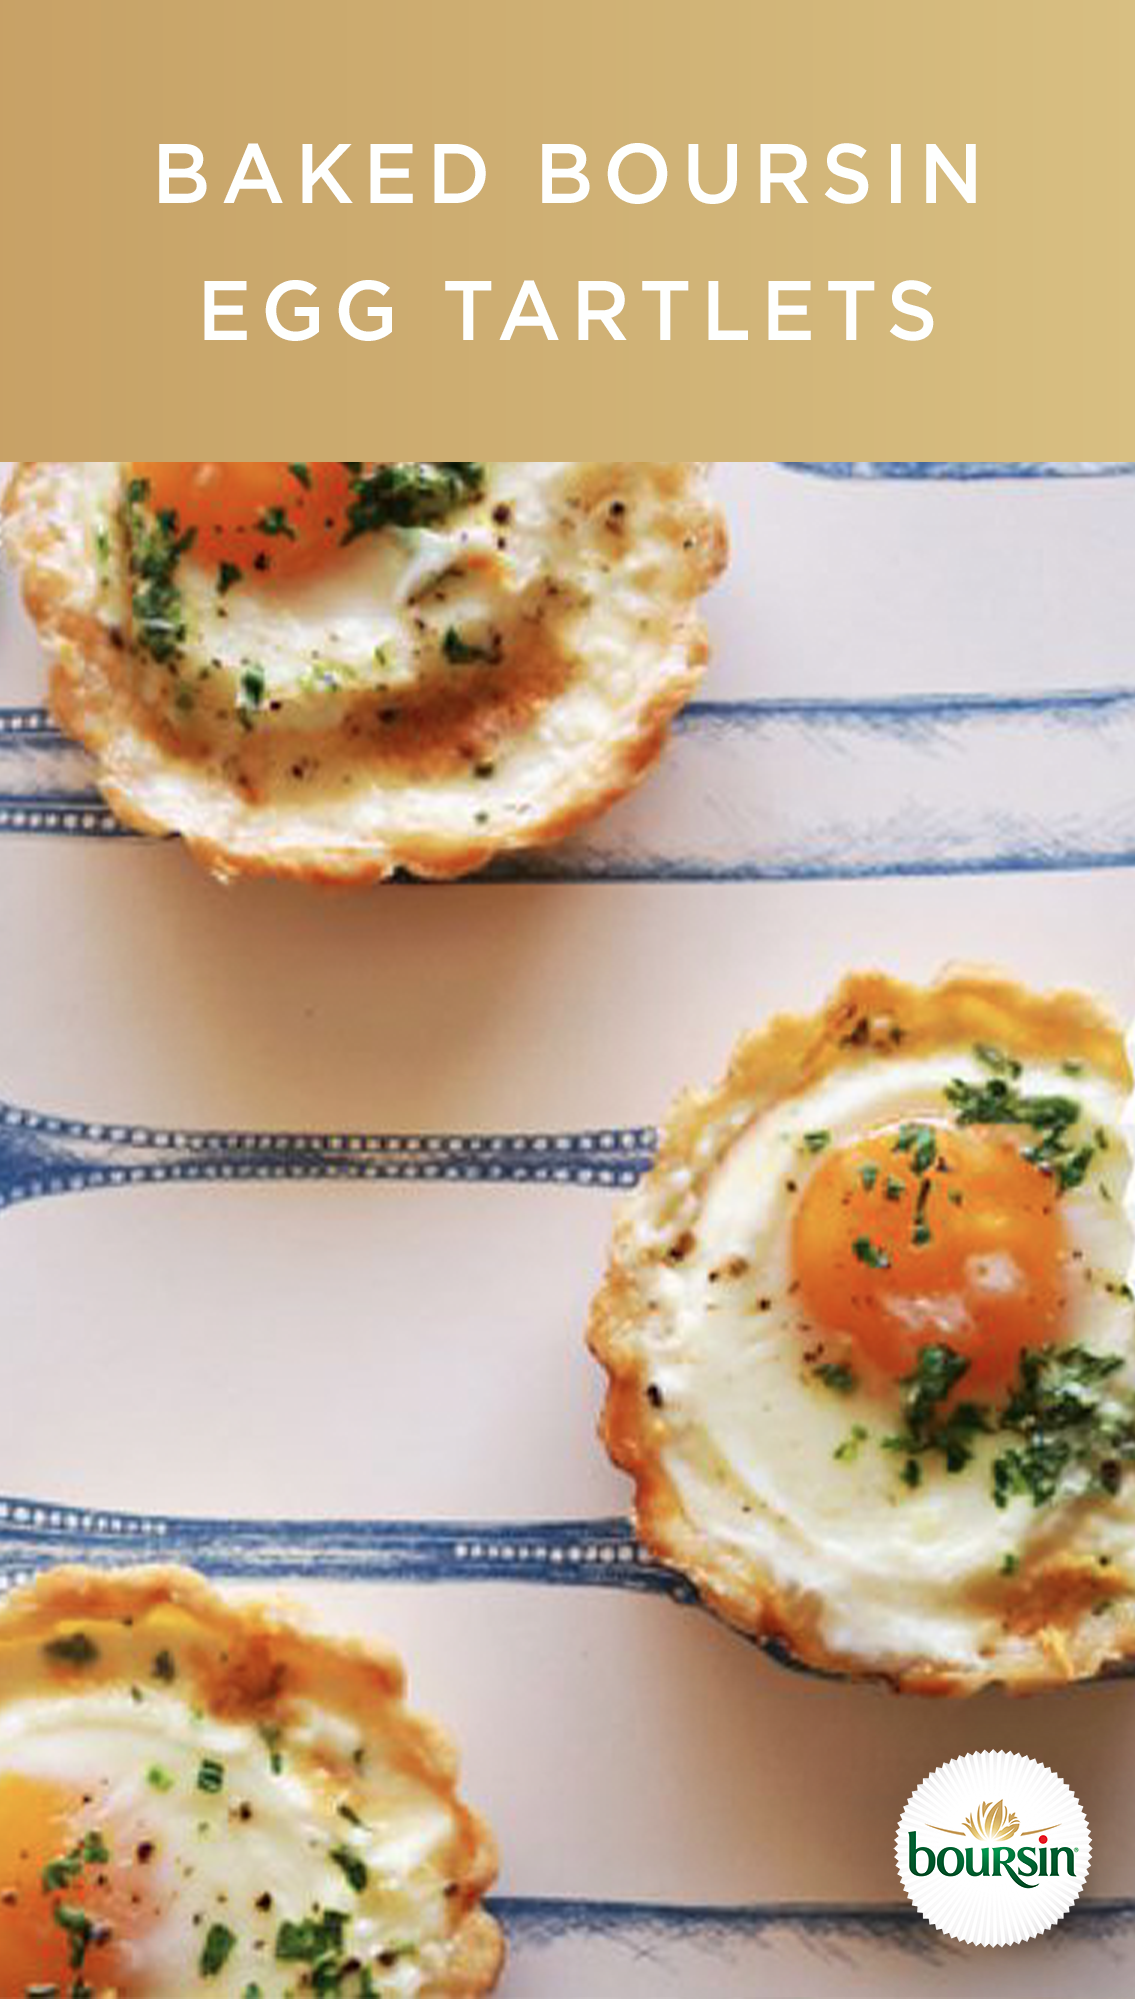 These 3 Step Baked Boursin Egg Tartlets Are A Simple Way To Start The Day With Some Wow First Add A Few Crumbles Of Boursin Ch Recipes Food Breakfast Recipes